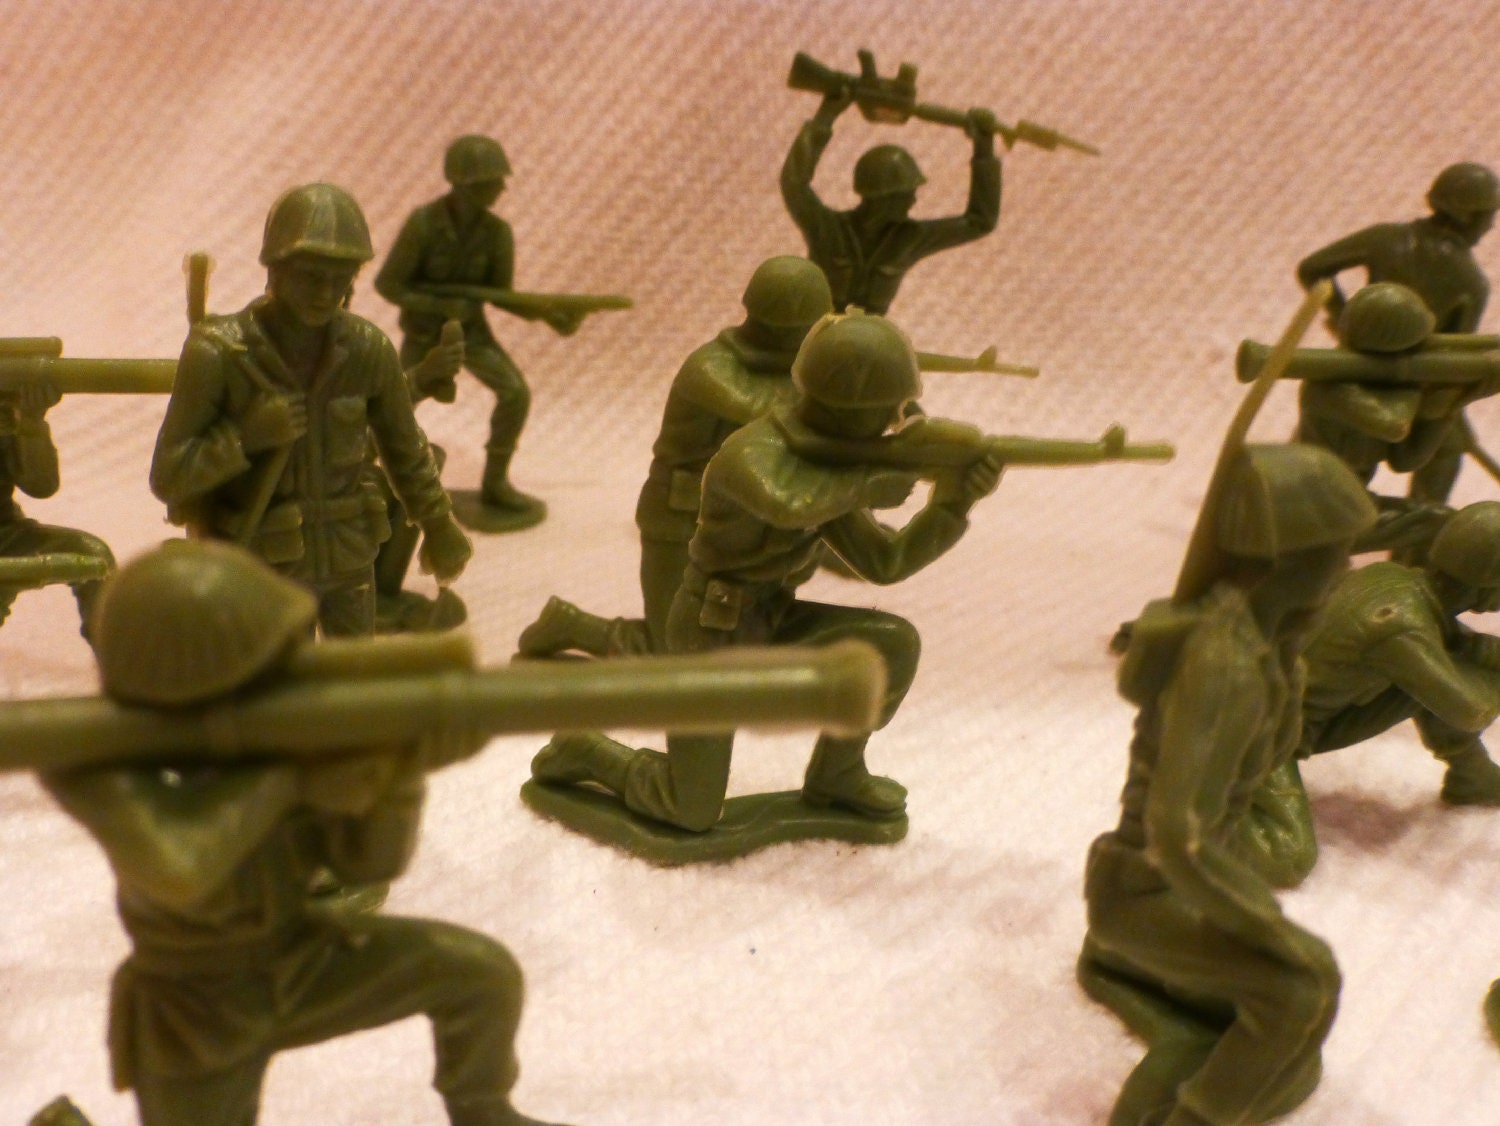 Army Toys For Boys : Army men toy set s